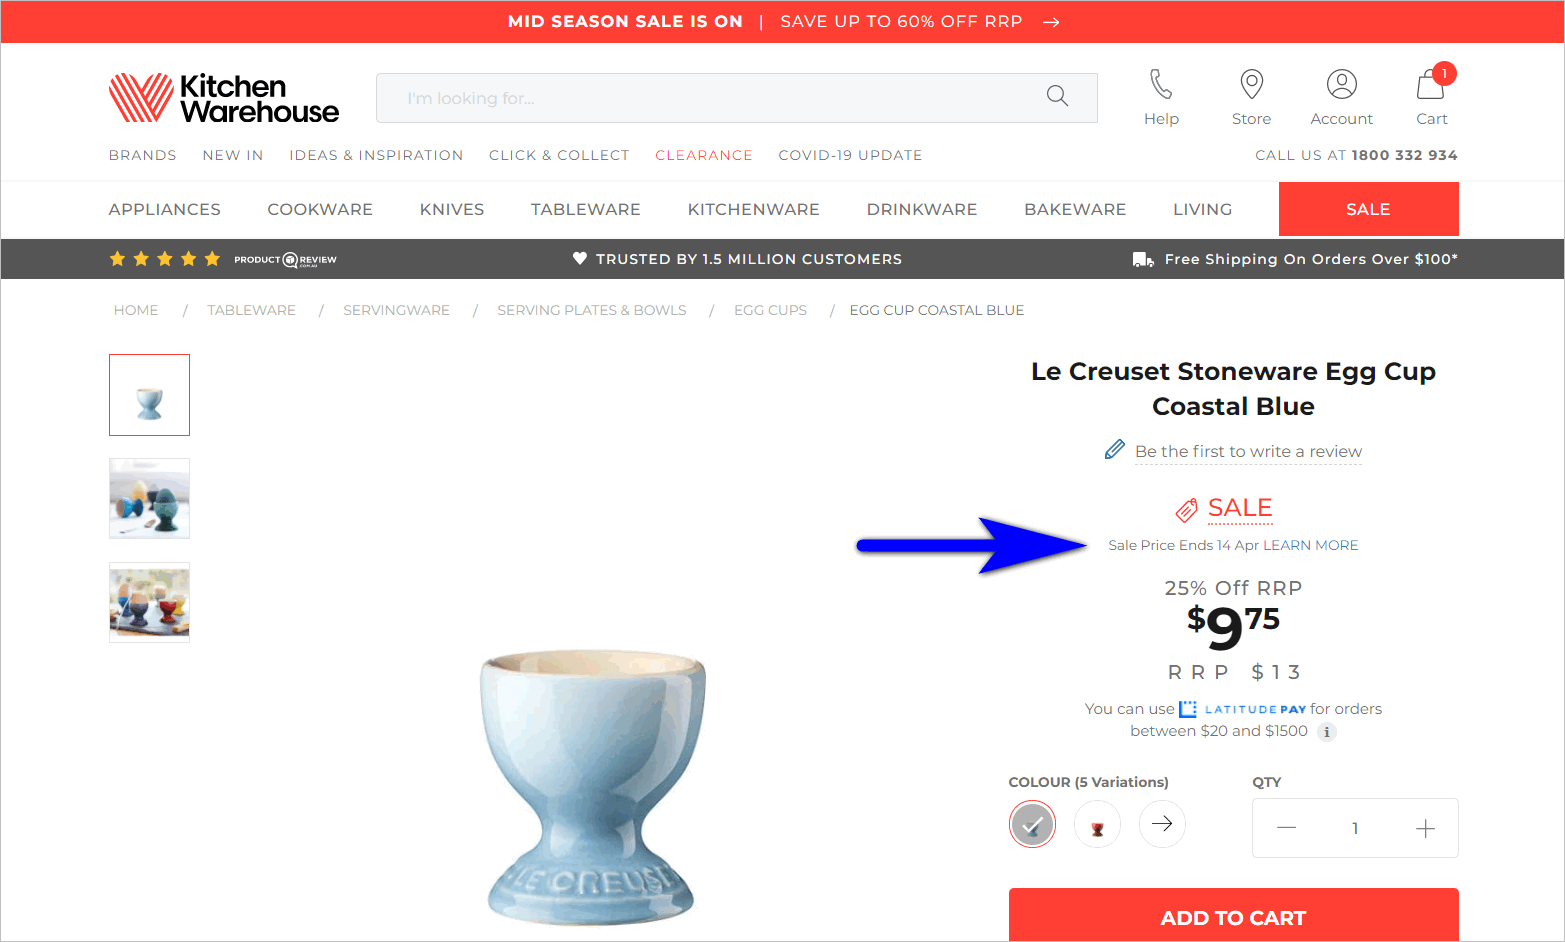 limited time offer example - kitchenwarehouse.com.au's product detail page for an item on sale shows the original price, the sale price, and the sale price end date